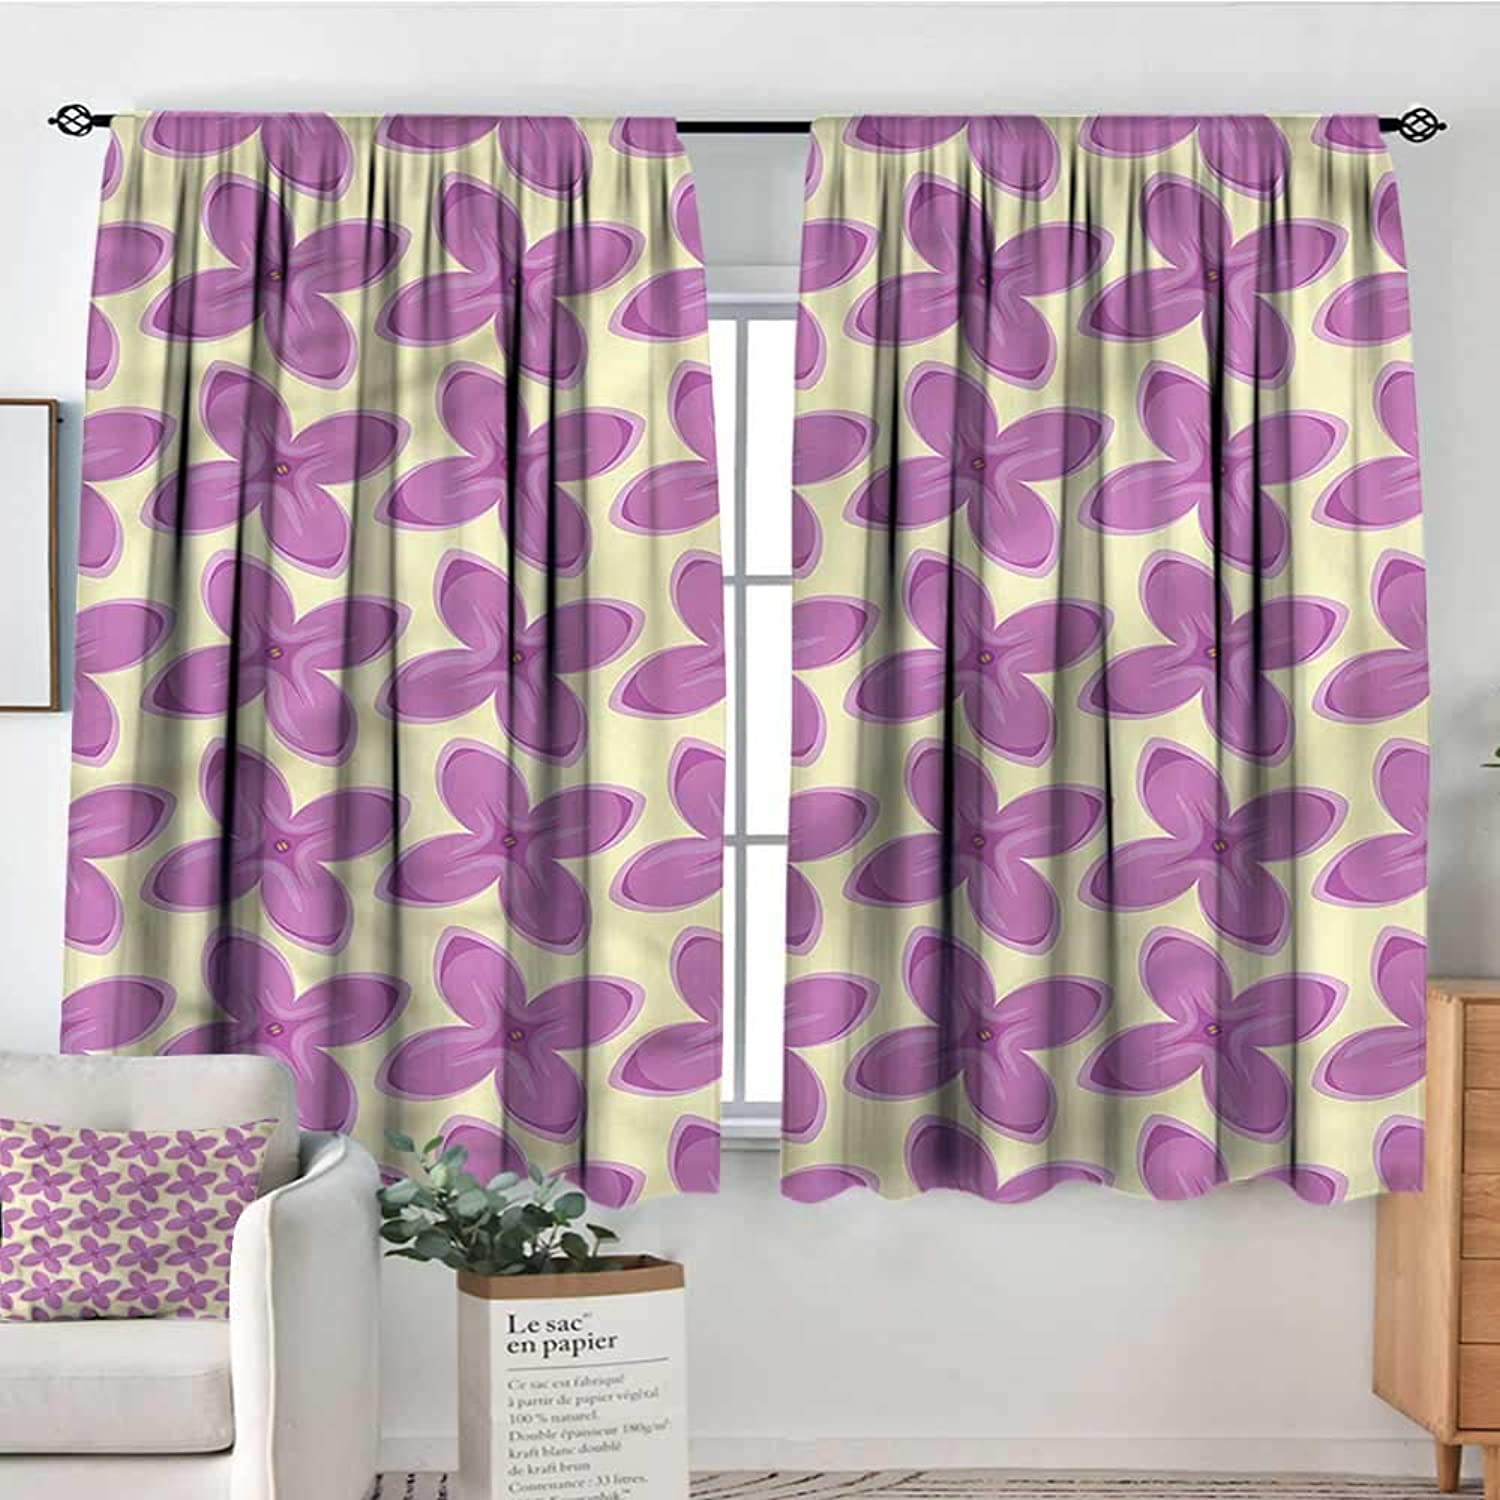 Mauve,Decor Curtains Fresh Floret Buds 42 X63  Drapes for Baby Iving Room